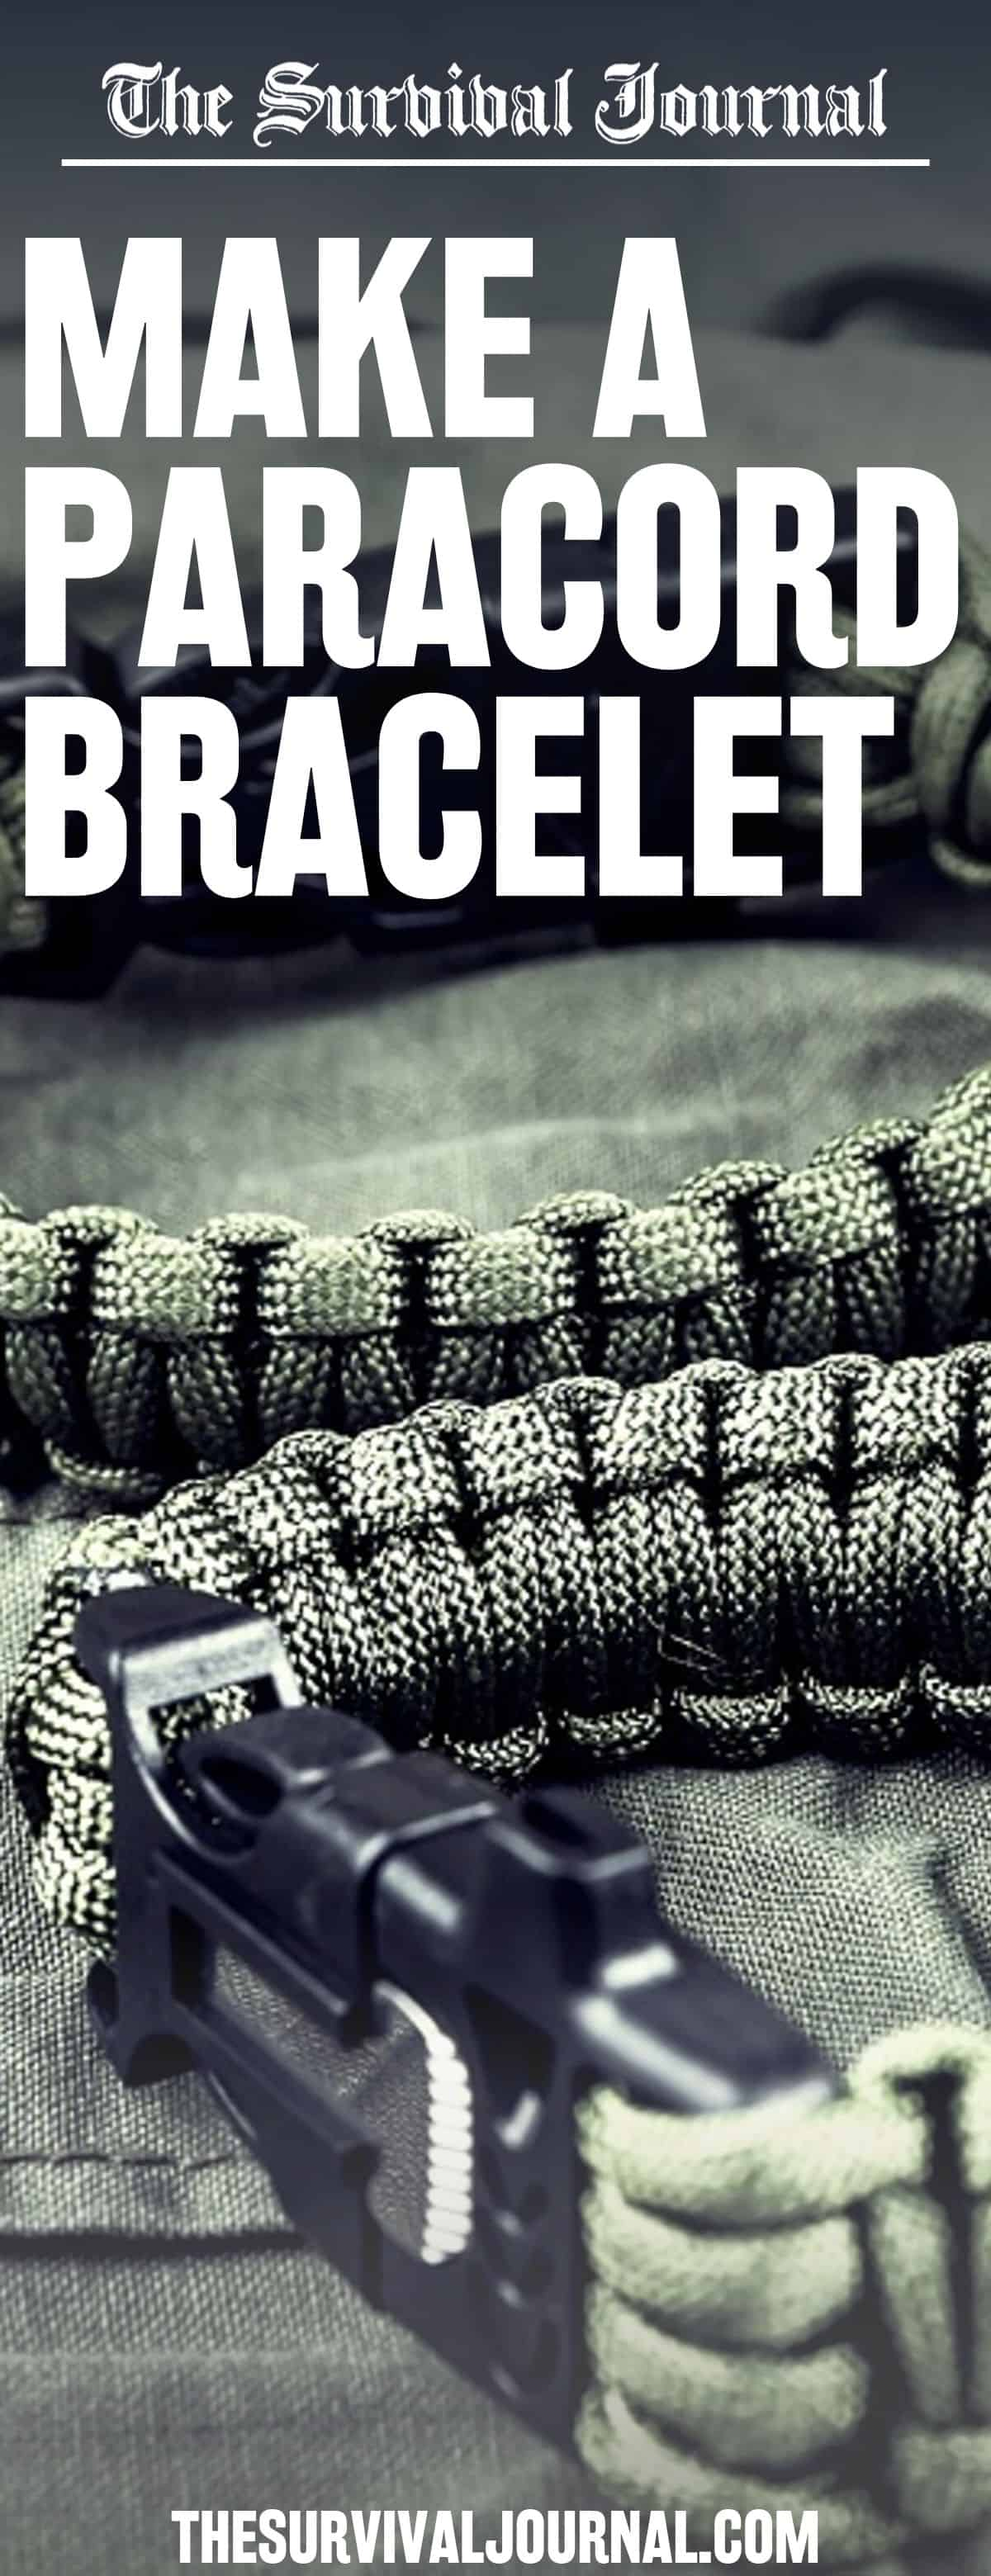 how to make paracord bracelet